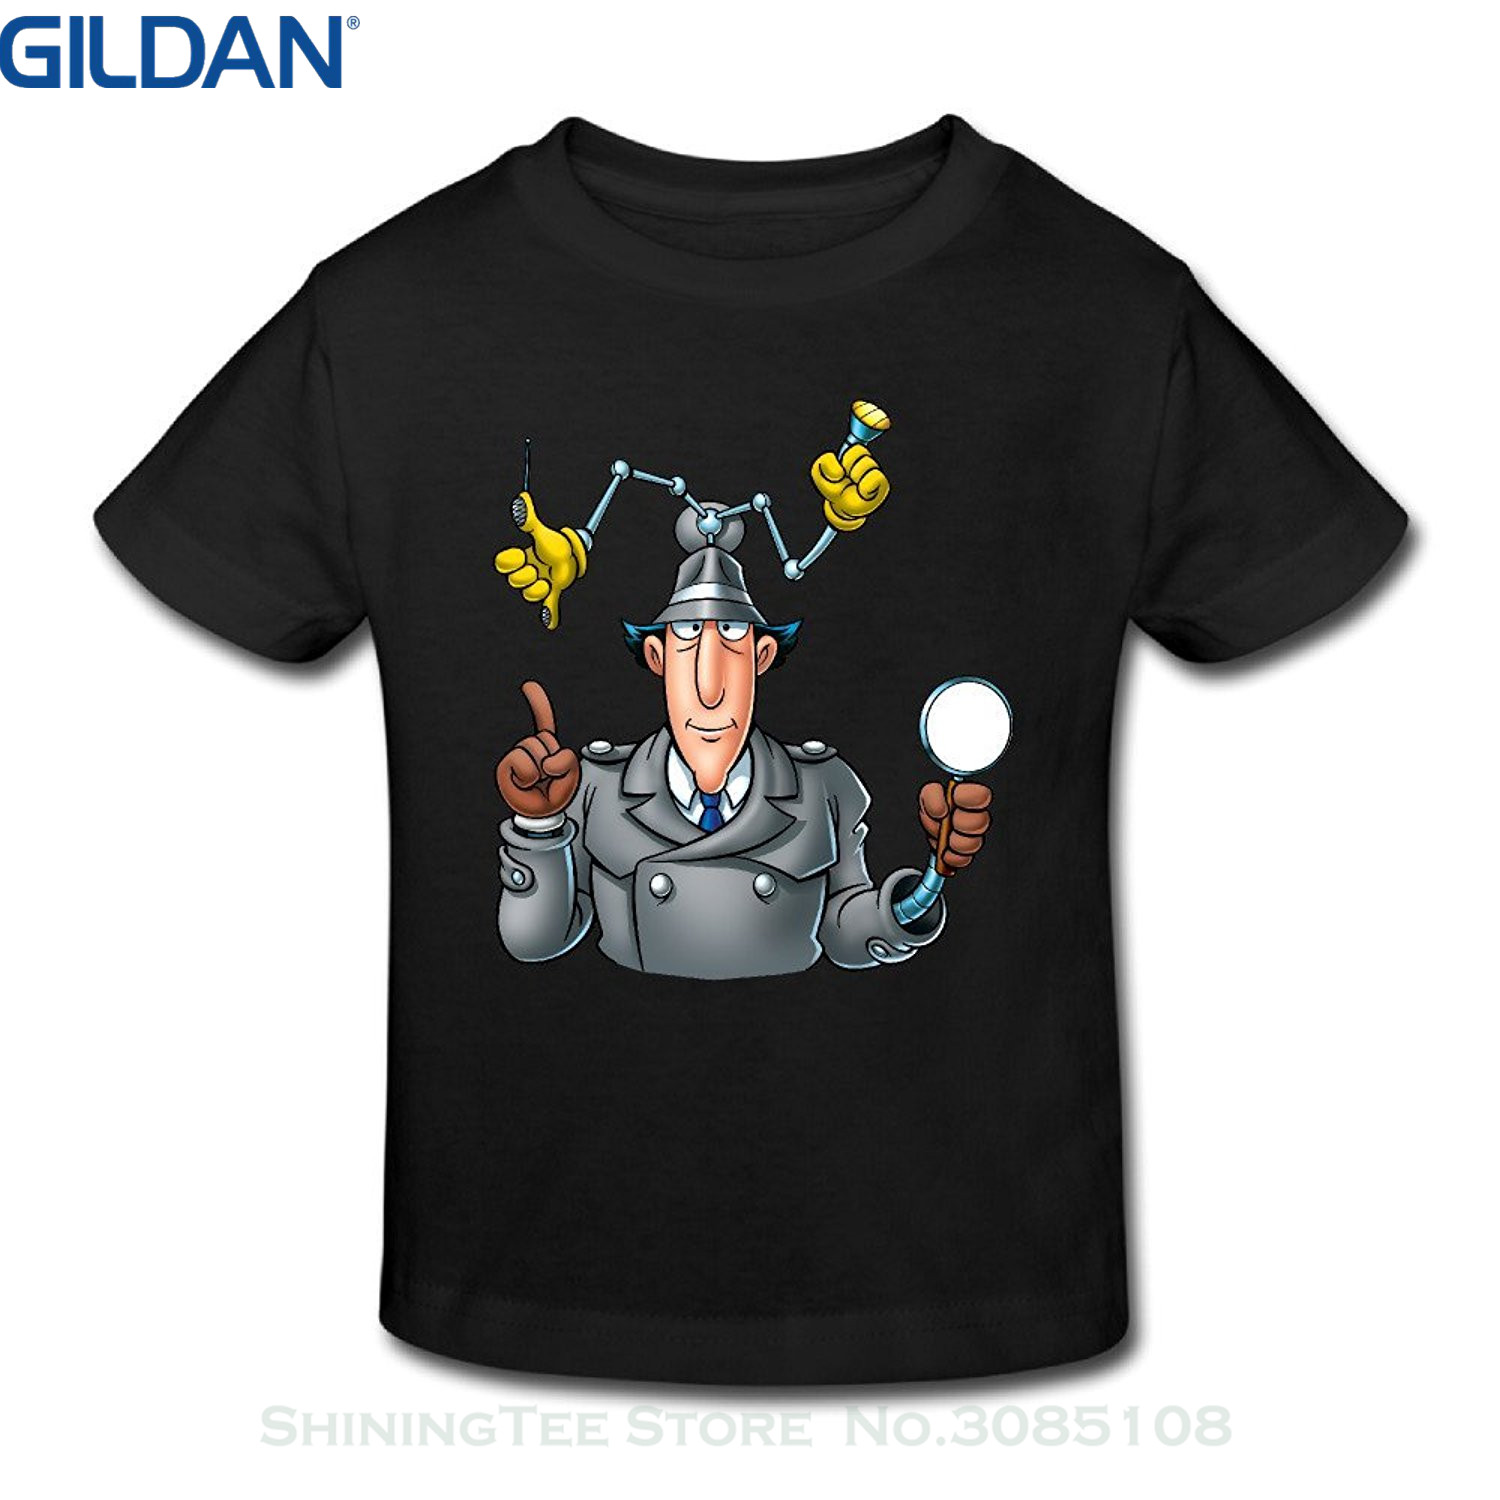 GILDAN T Shirt Fashion Custom Summer Inspector Gadget Cgi-animated Tv Series Short Sleeve Toddler Tee Toddler Tshirts